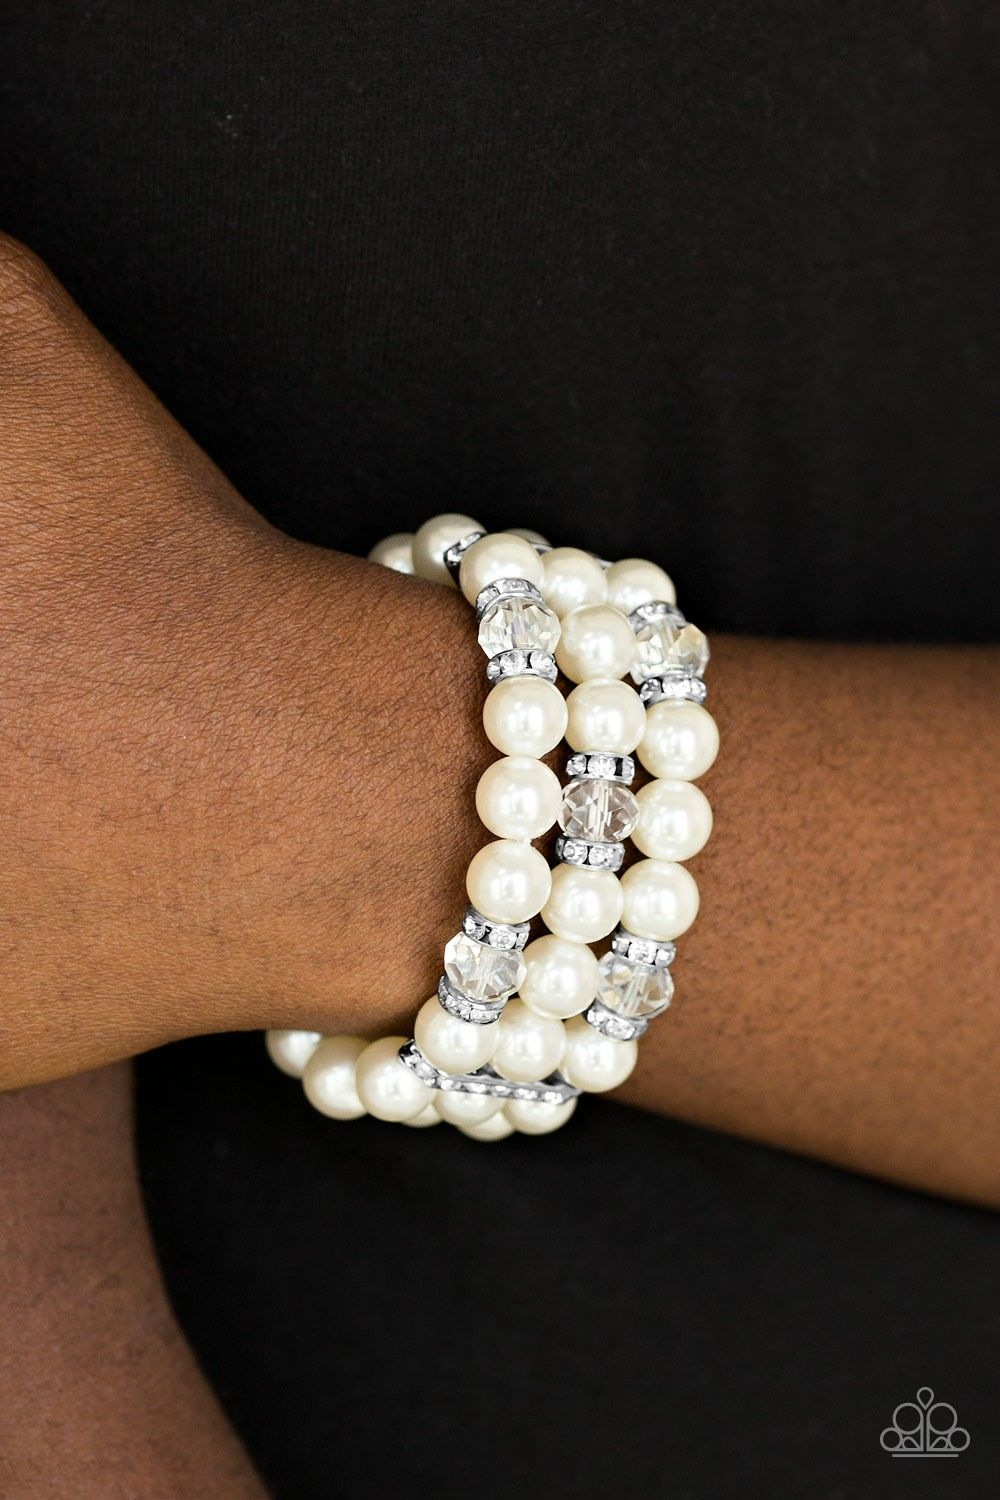 Pin by Mary's Bling Accessories on January White